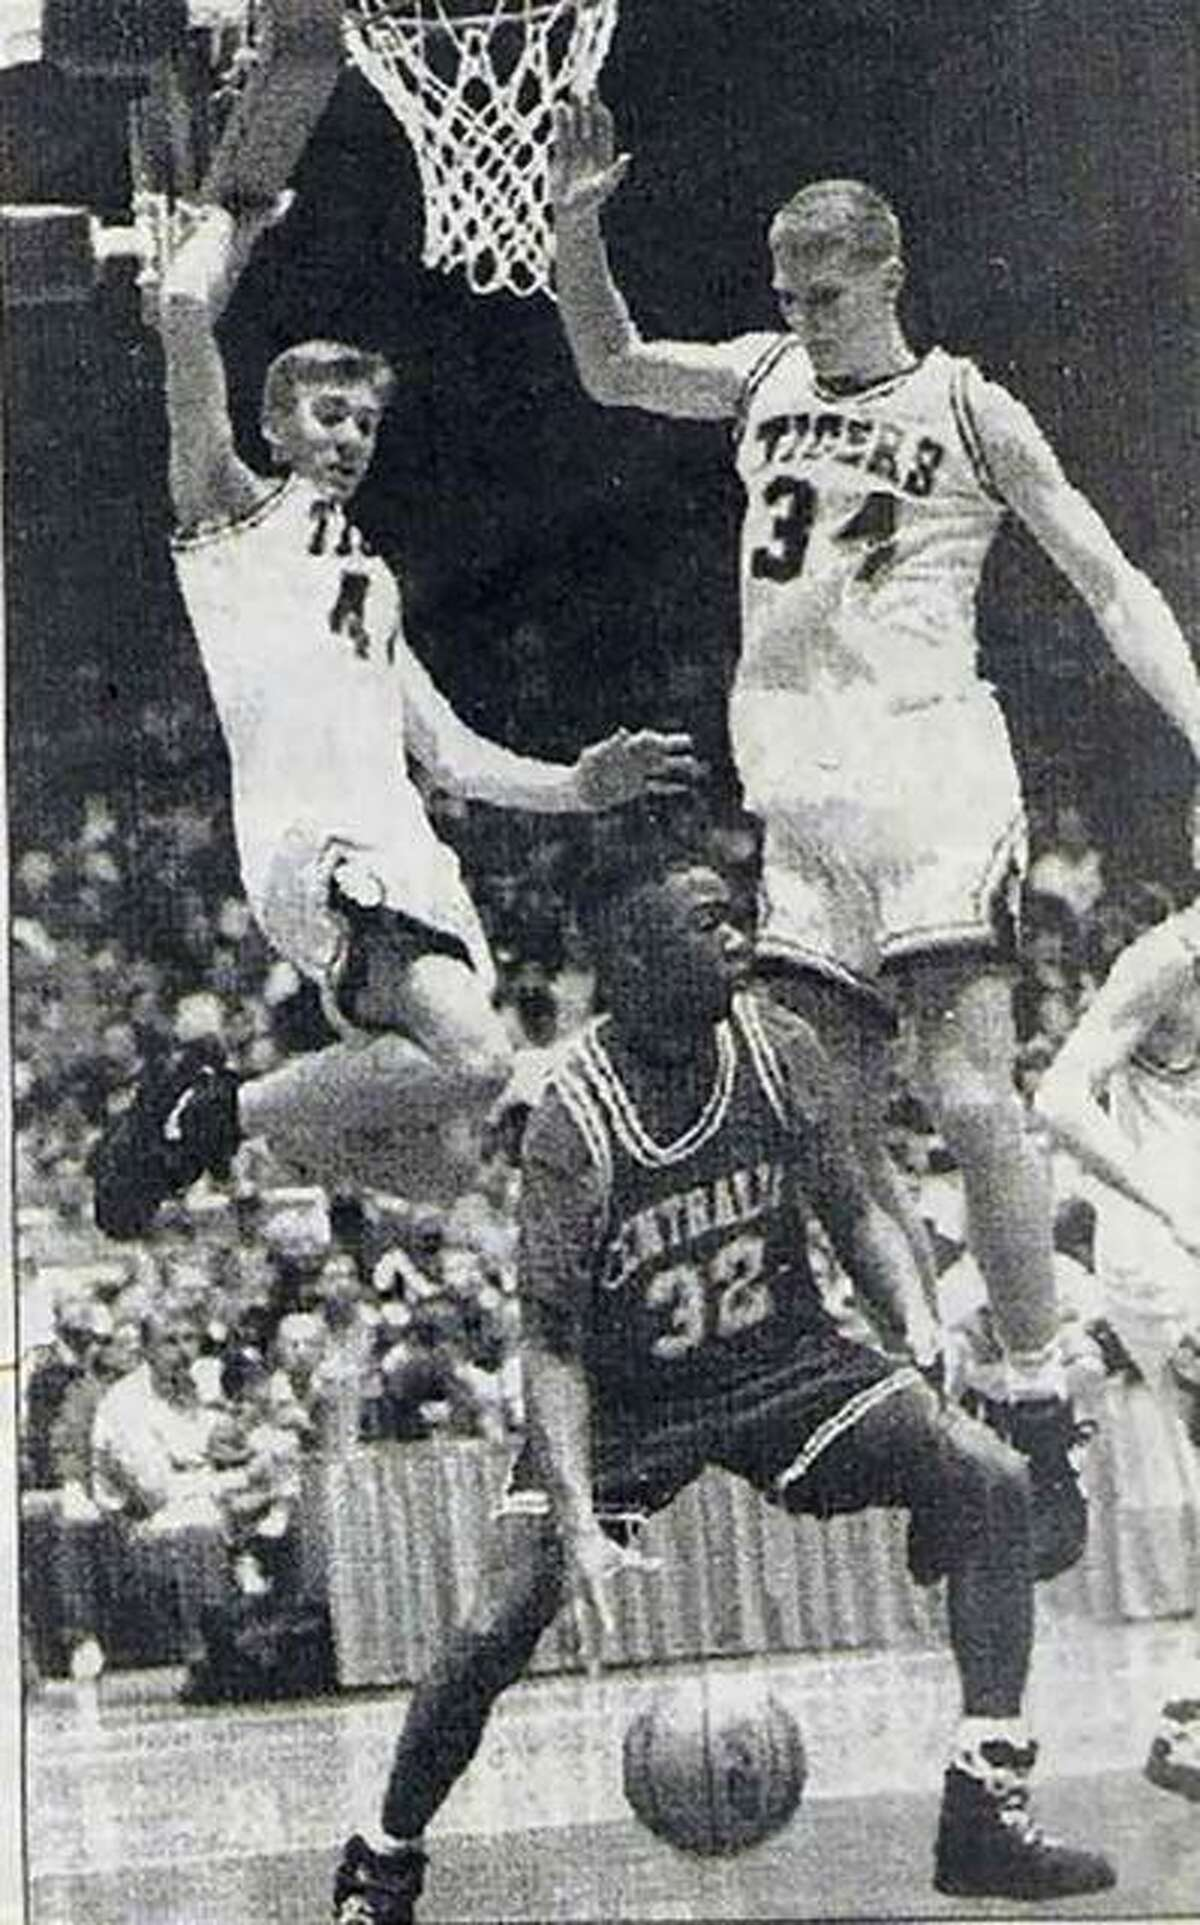 Edwardsville's Justin Range, left, and Andrew Thompson guard Centralia's La Shawn Webster during the Class AA Carbondale Super-Sectional in 1993.